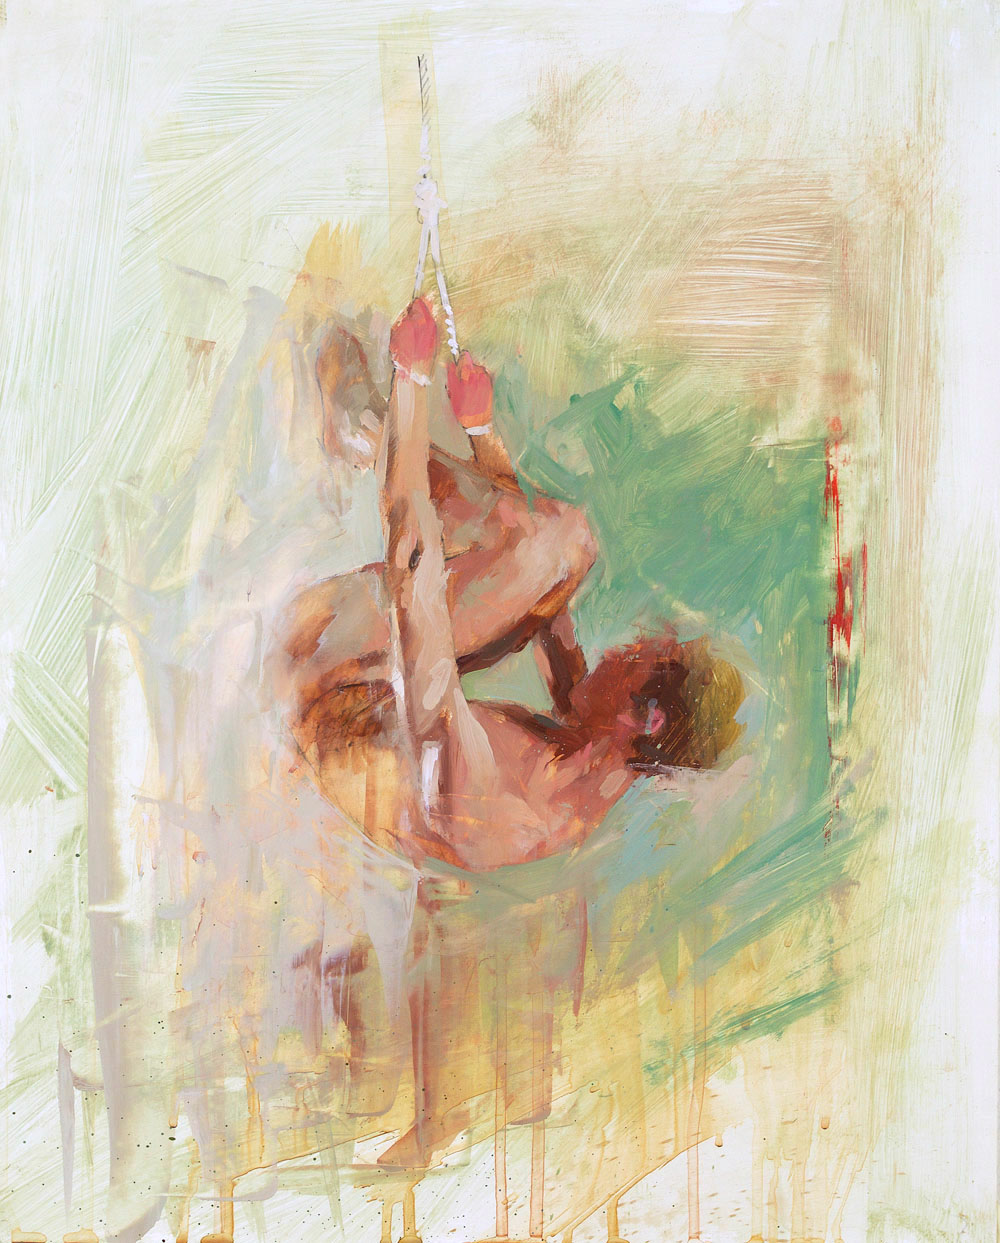 Hang Study No. 1   20 x 16 inches  oil on TerraSkin - SOLD